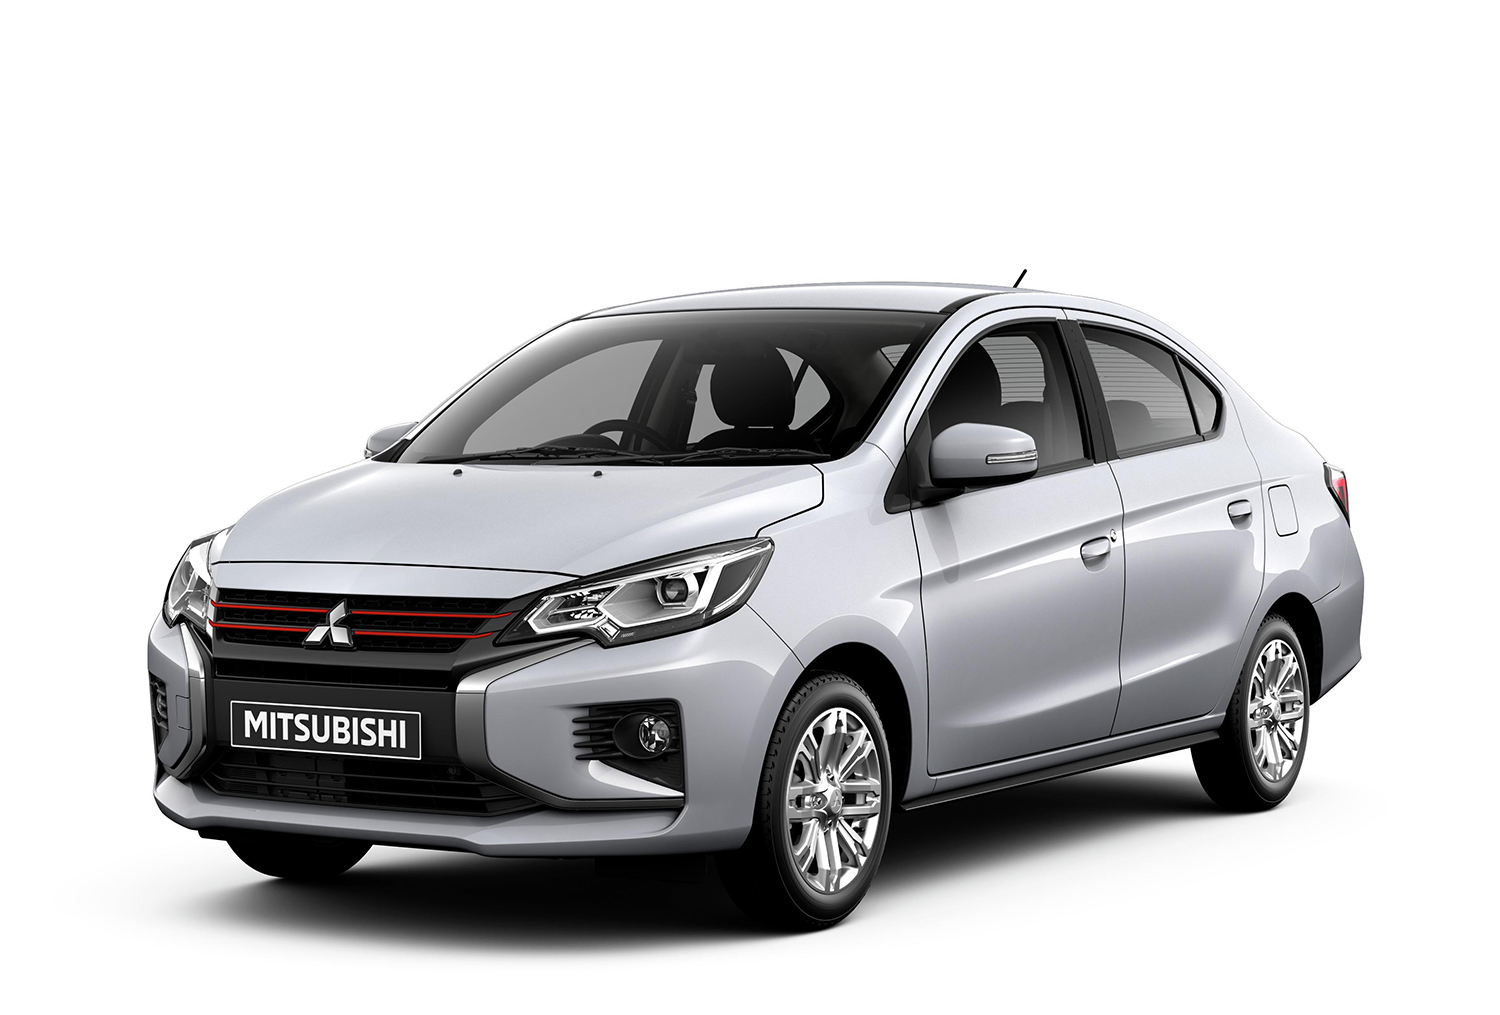 2020 Mitsubishi Mirage Review.2020 Mitsubishi Attrage And Mirage Facelift Thai Prices And